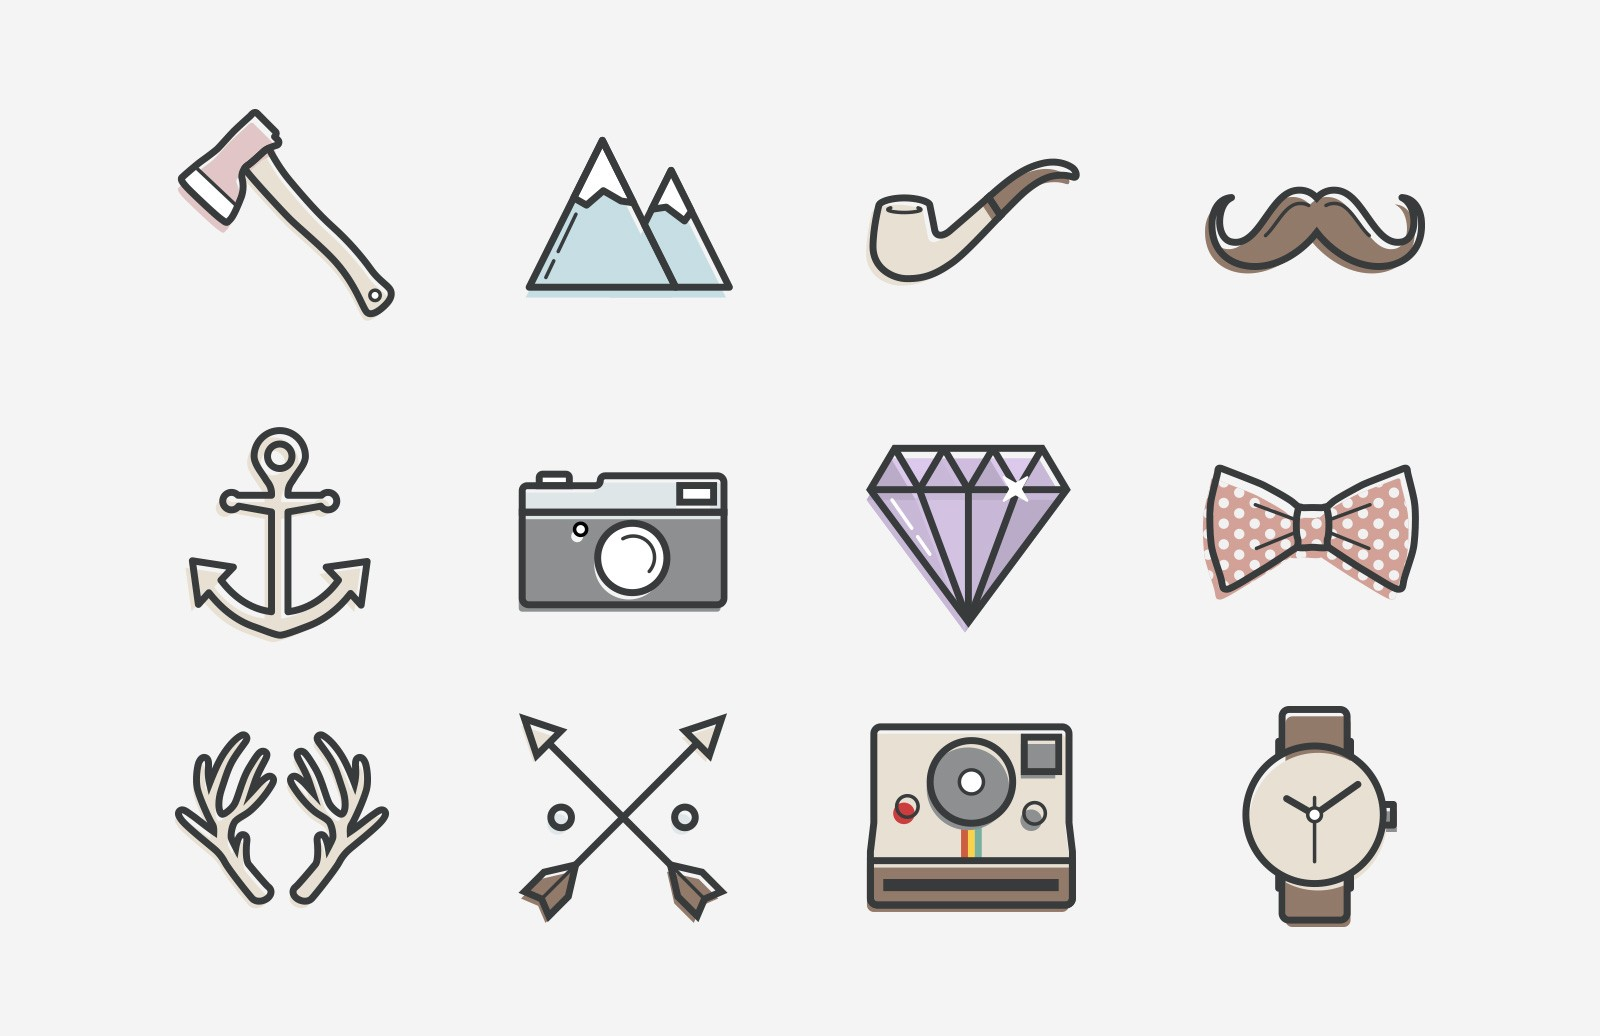 Hipster Stuff Vector Icons